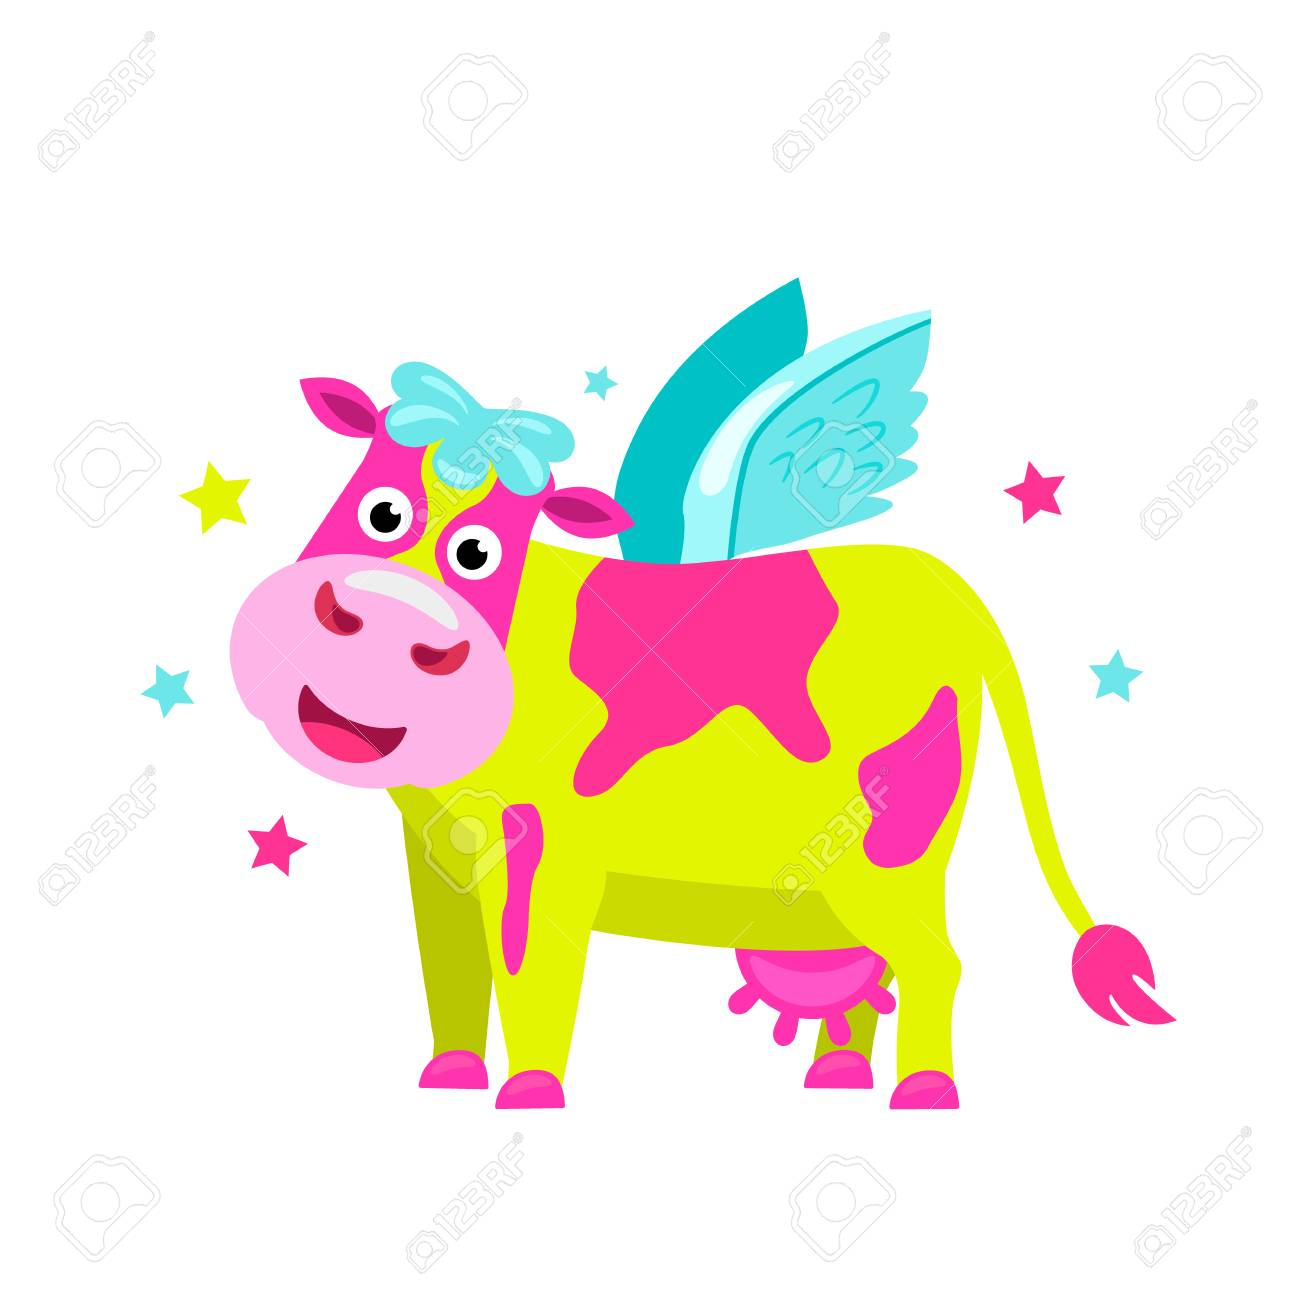 Bright lime pink cow with wings in the style of a unicorn. flat vector illustration isolated on white background - 125551712